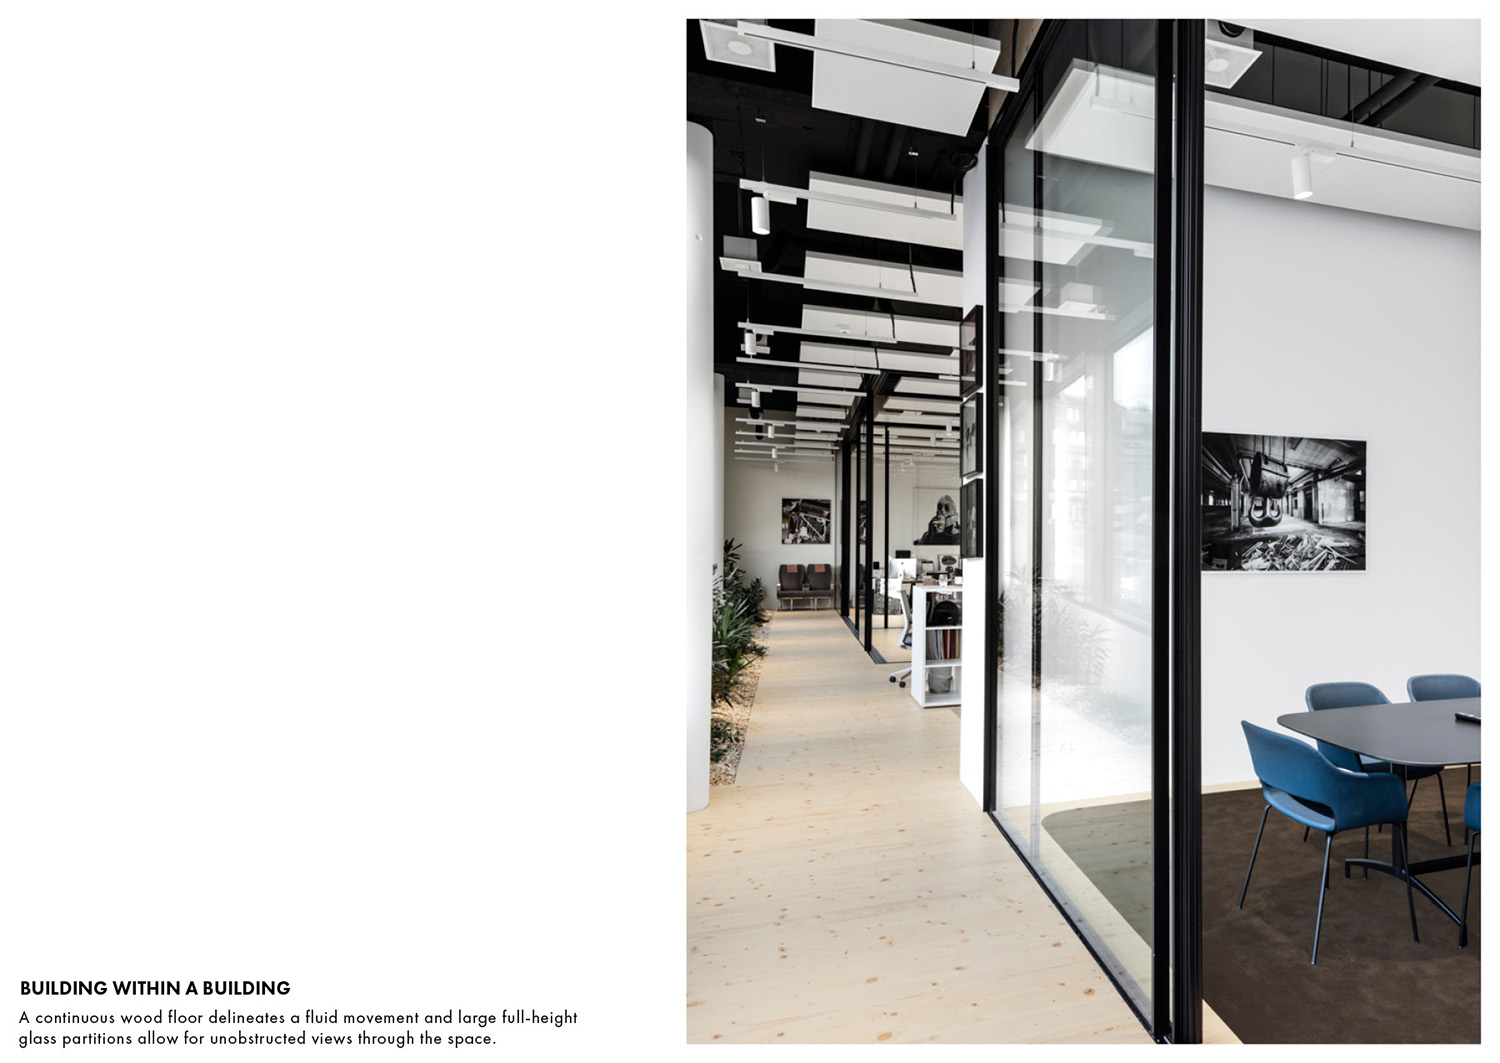 A continuous wood floor delineates a fluid movement and large full-height glass partitions allow for unobstructed views through the space. Delphine Burtin}